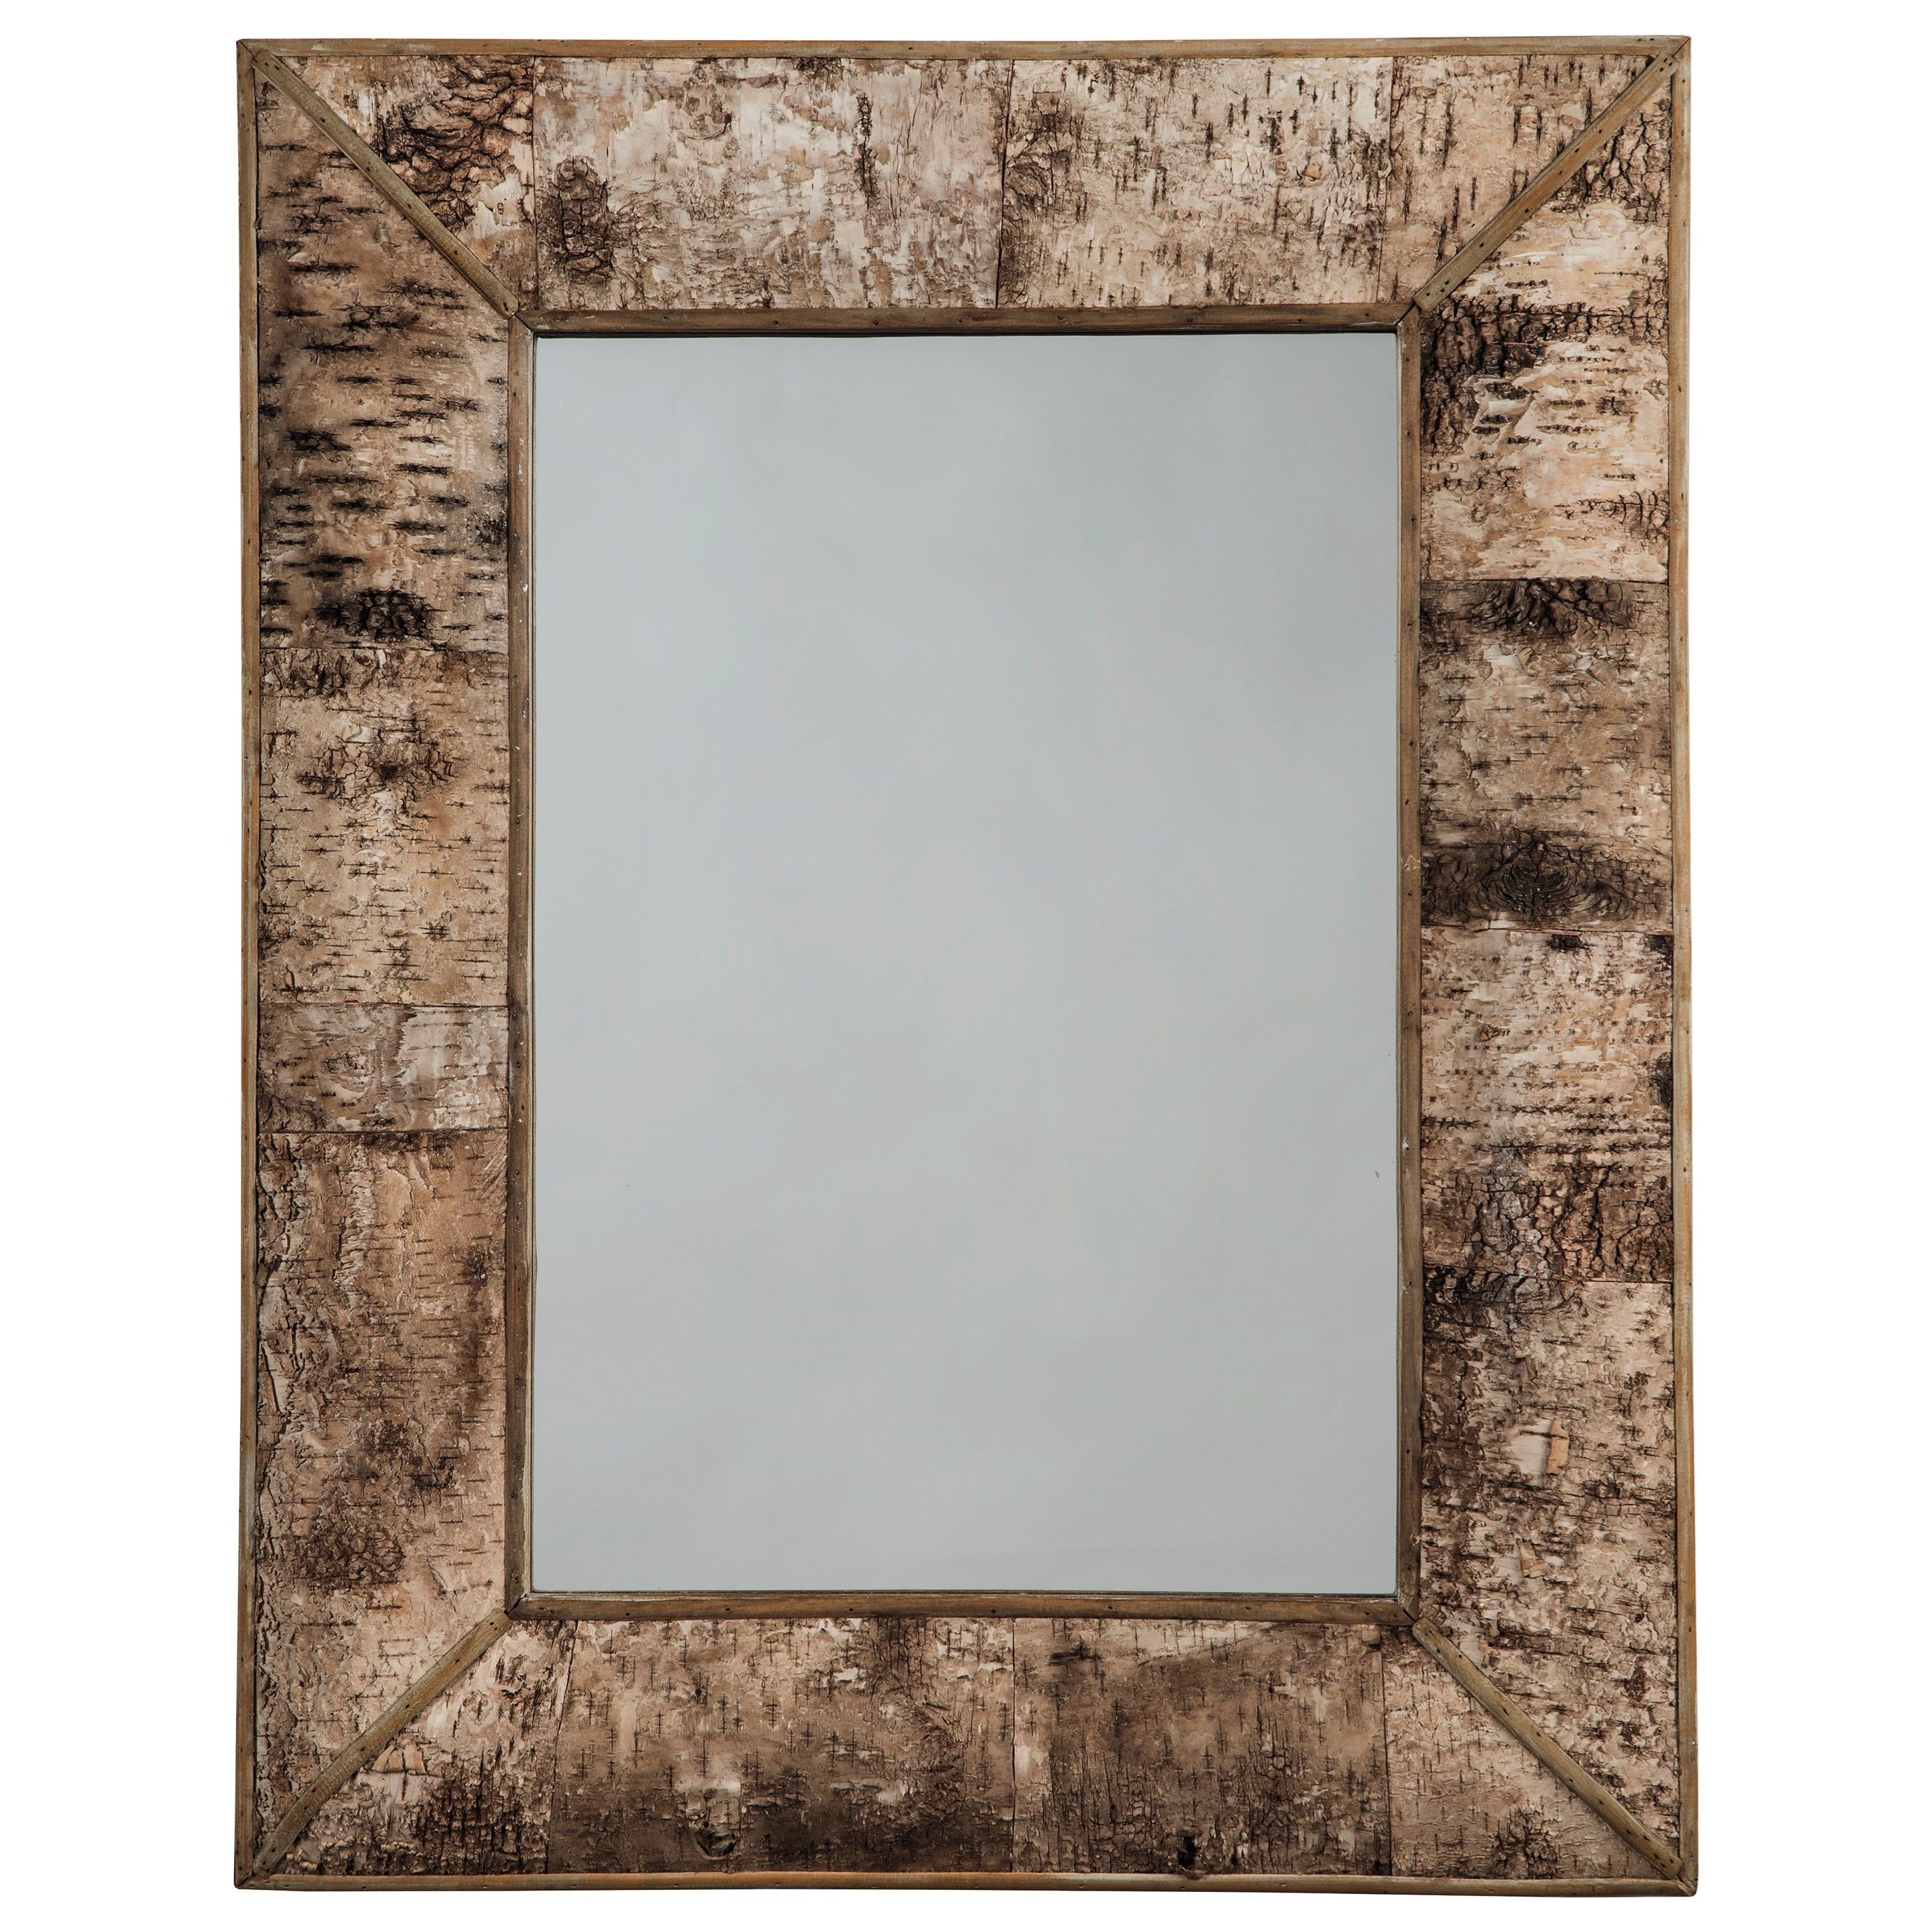 Signature Design by Ashley Accent Mirrors Josefa Brown Accent Mirror - Item Number: A8010141